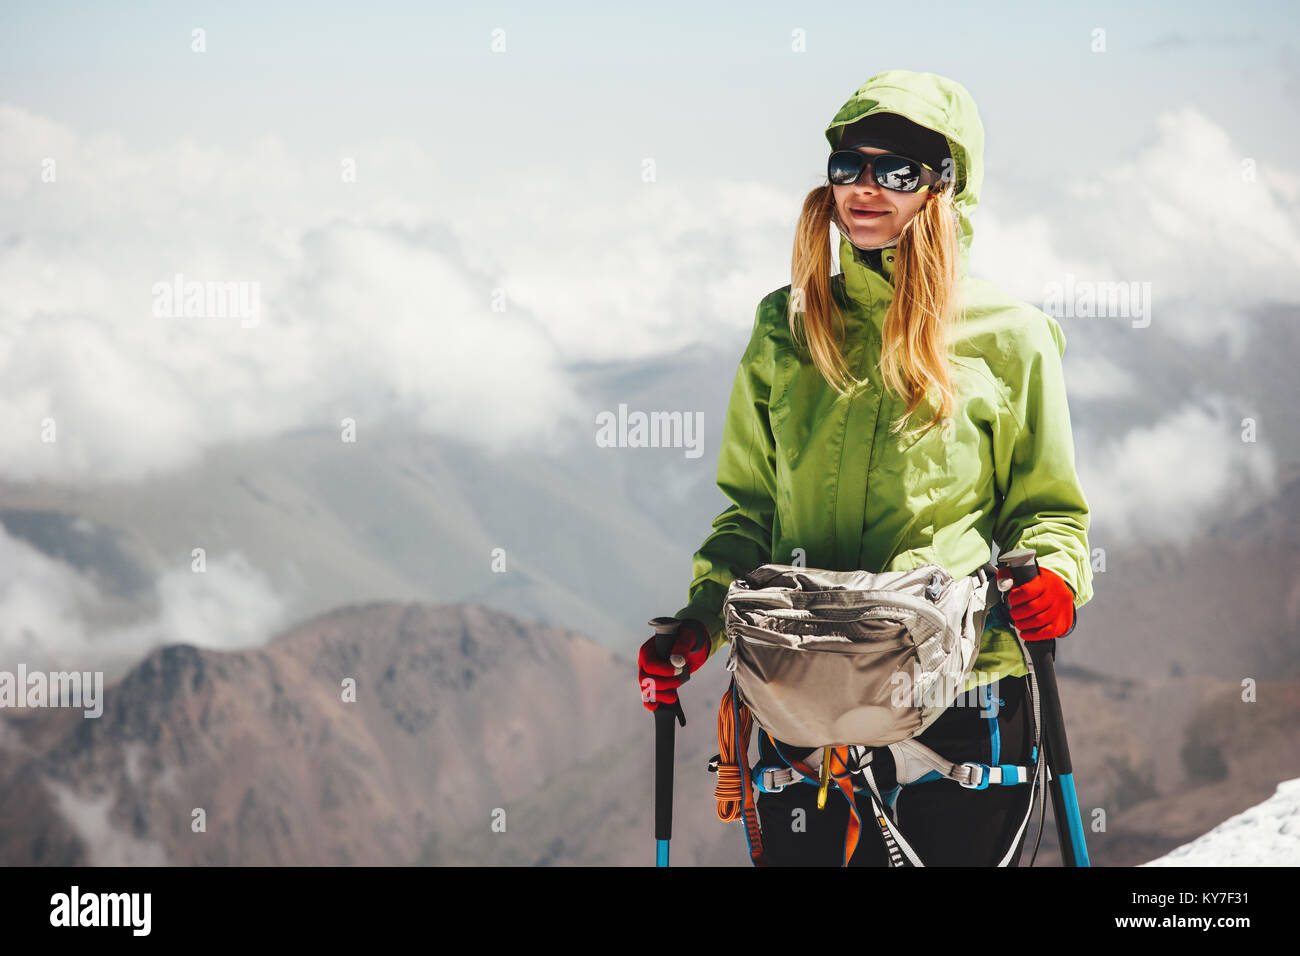 Woman climbing on mountain summit Travel Lifestyle adventure concept active vacations outdoor mountaineering sport - Stock Image